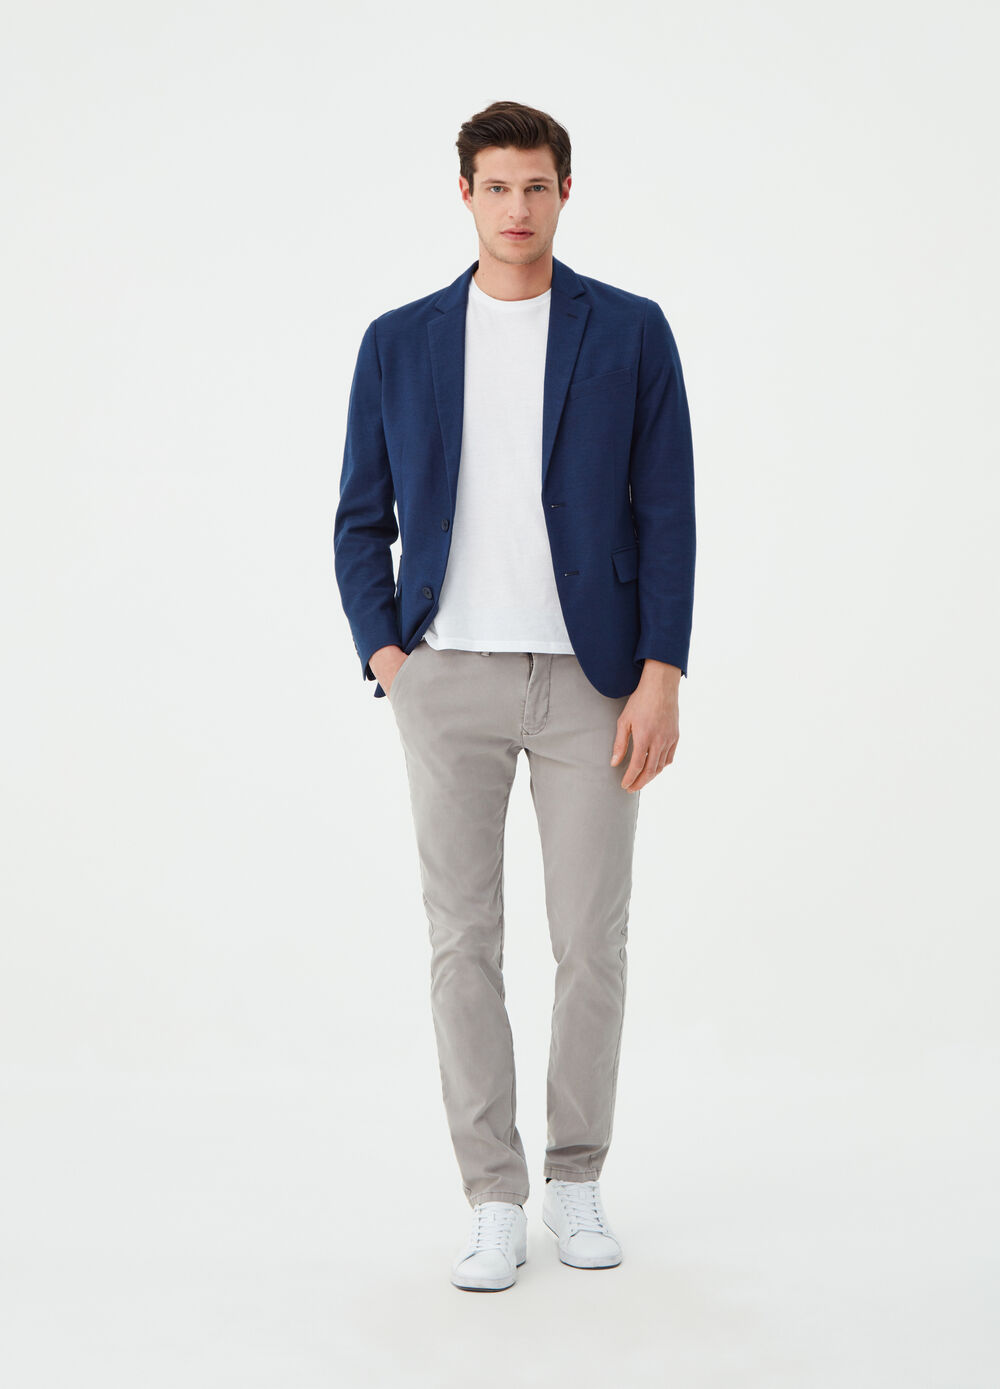 Blazer with lapels and pockets with flap